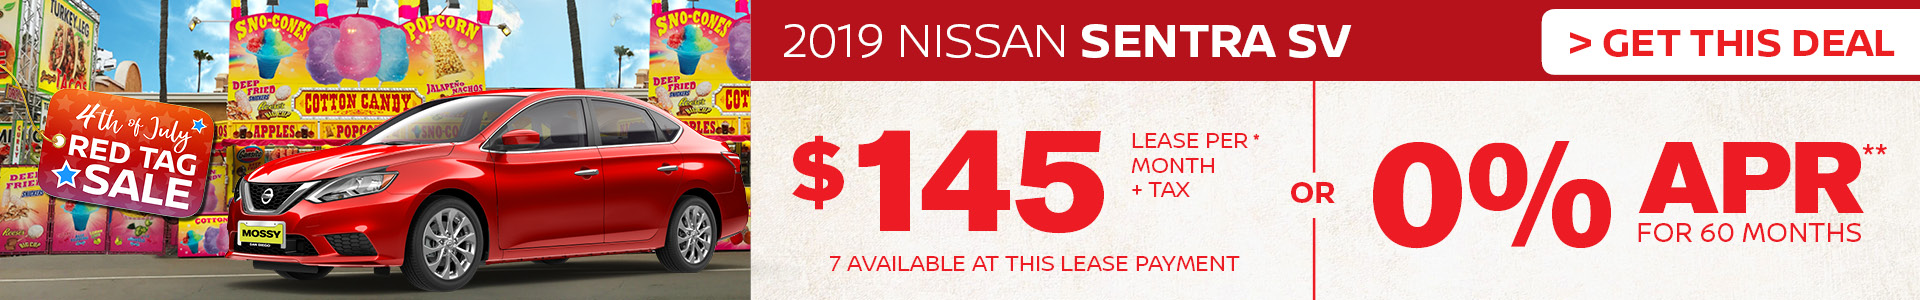 Mossy Nissan - Nissan Sentra $145 Lease